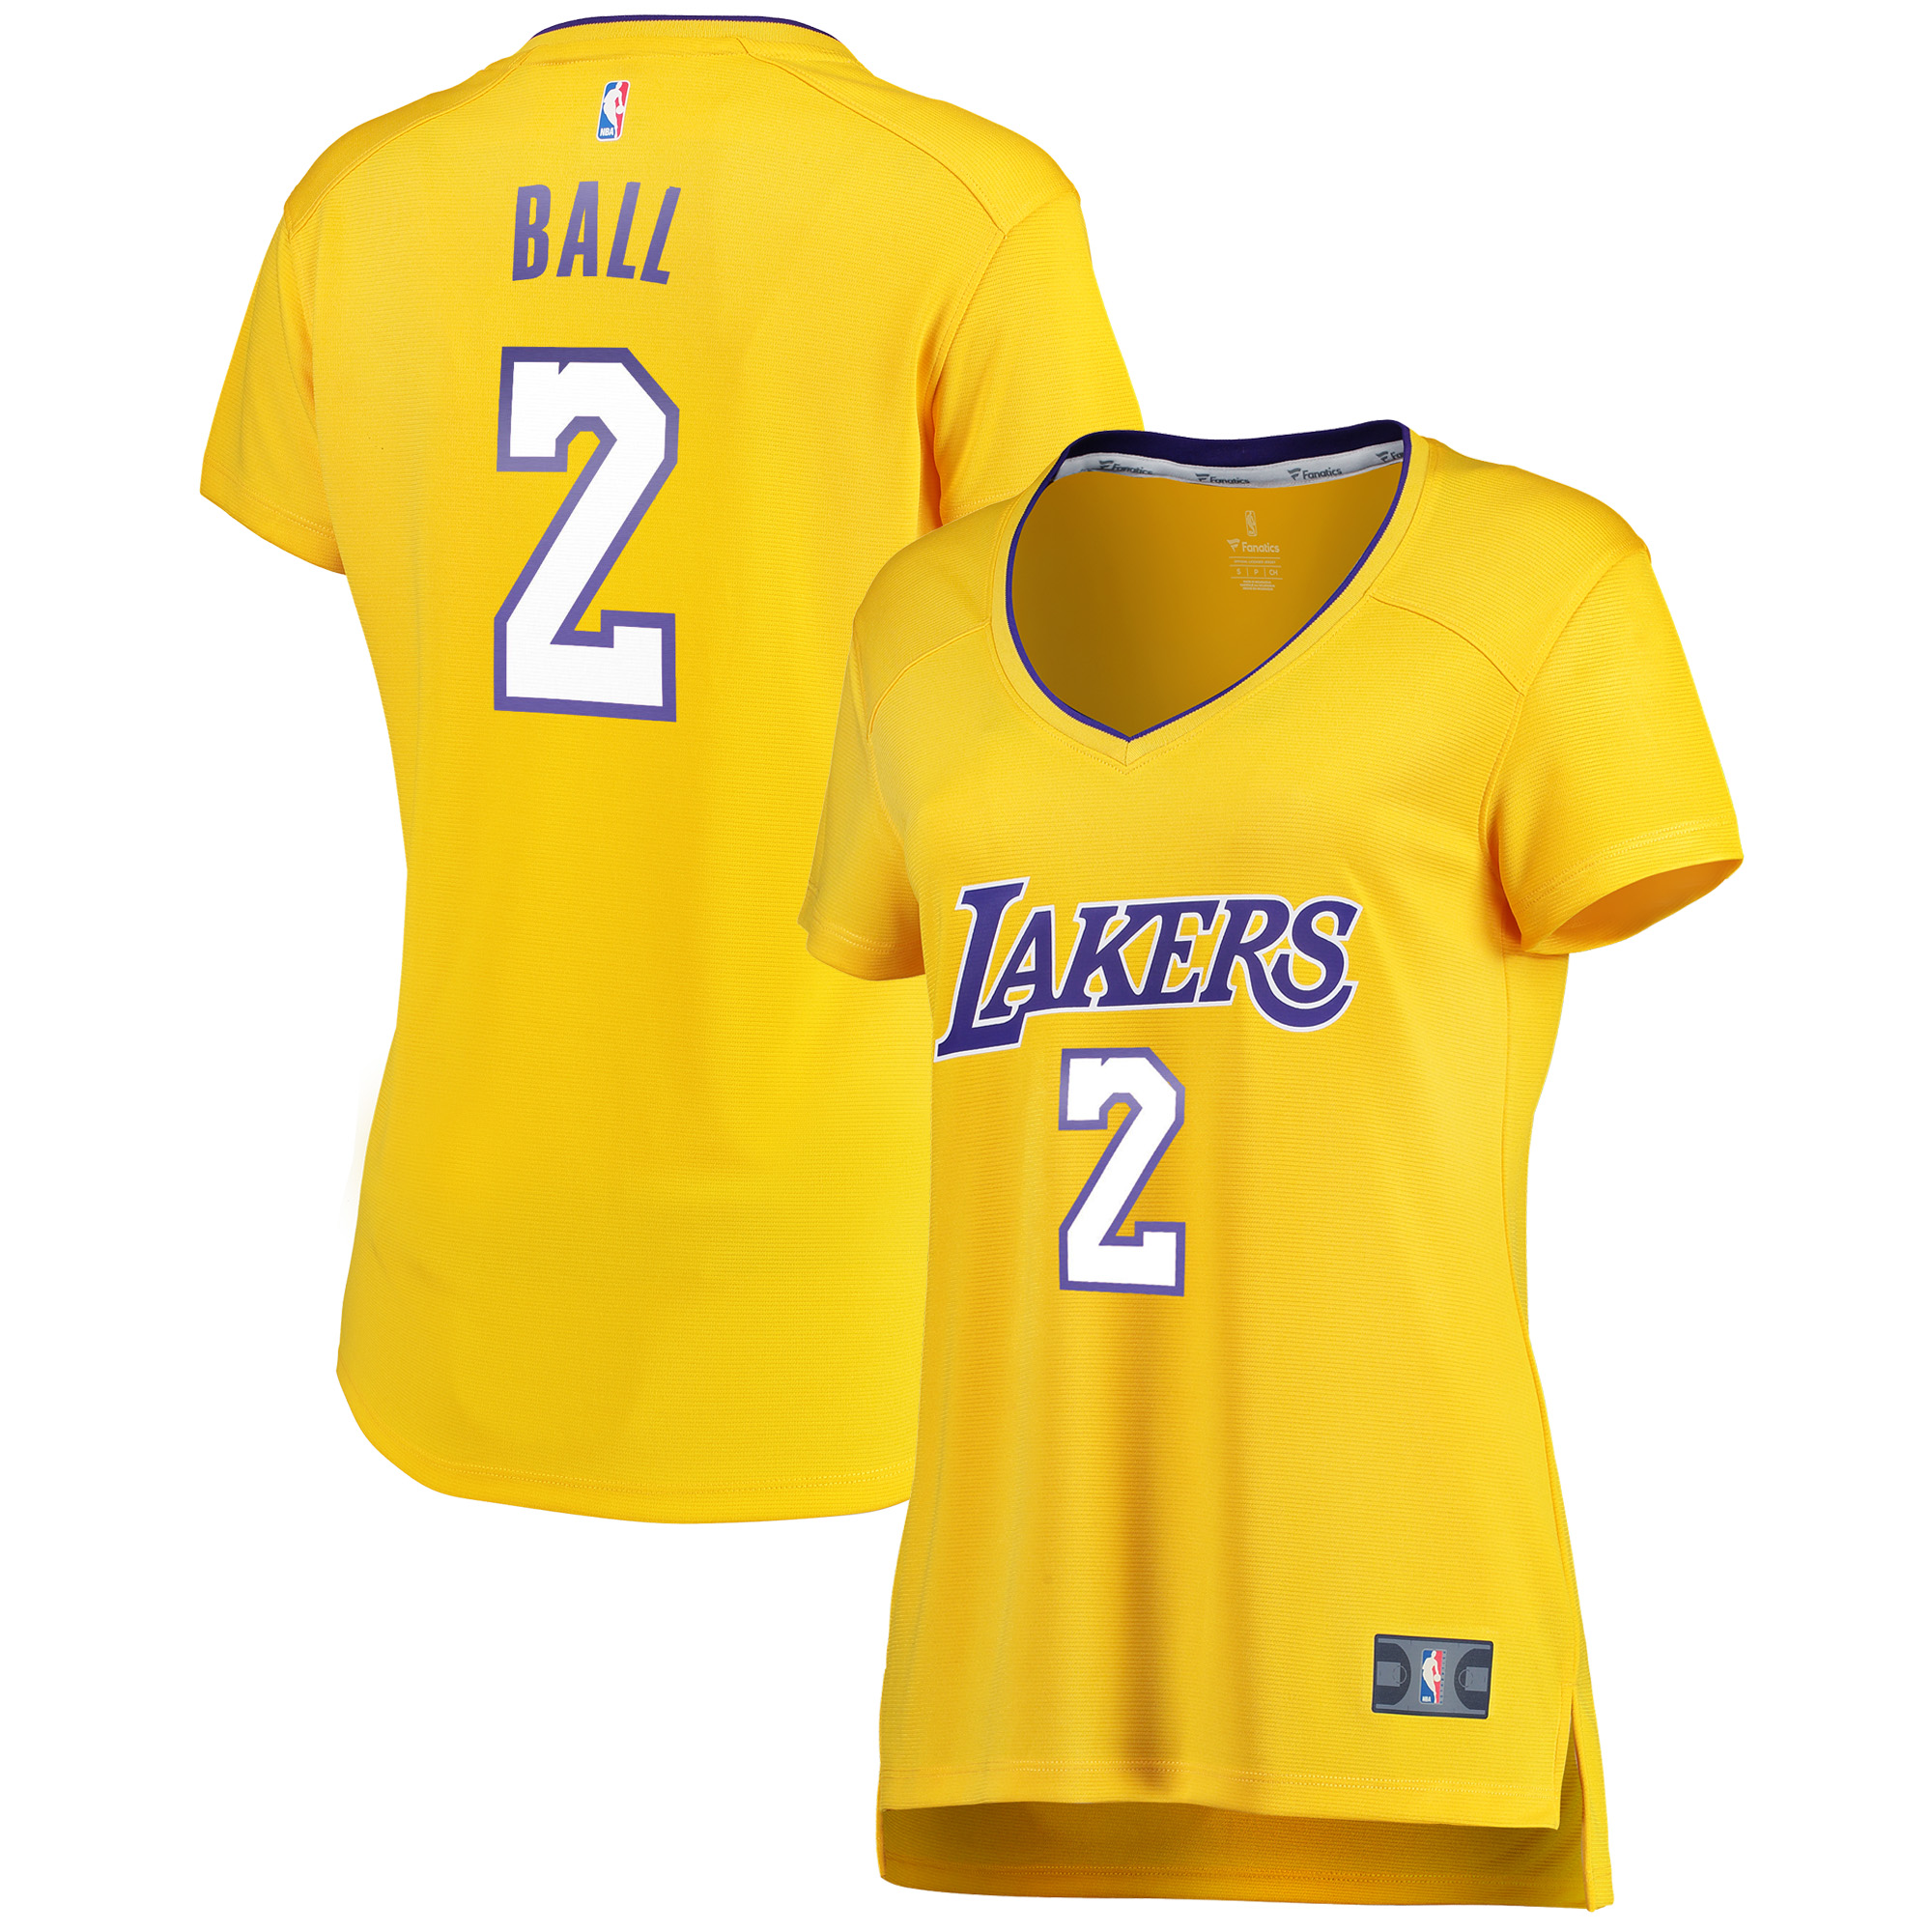 61df7730e5f4 Lonzo Ball Los Angeles Lakers Fanatics Branded Women s Fast Break Replica  Icon Edition Jersey - Gold - Walmart.com